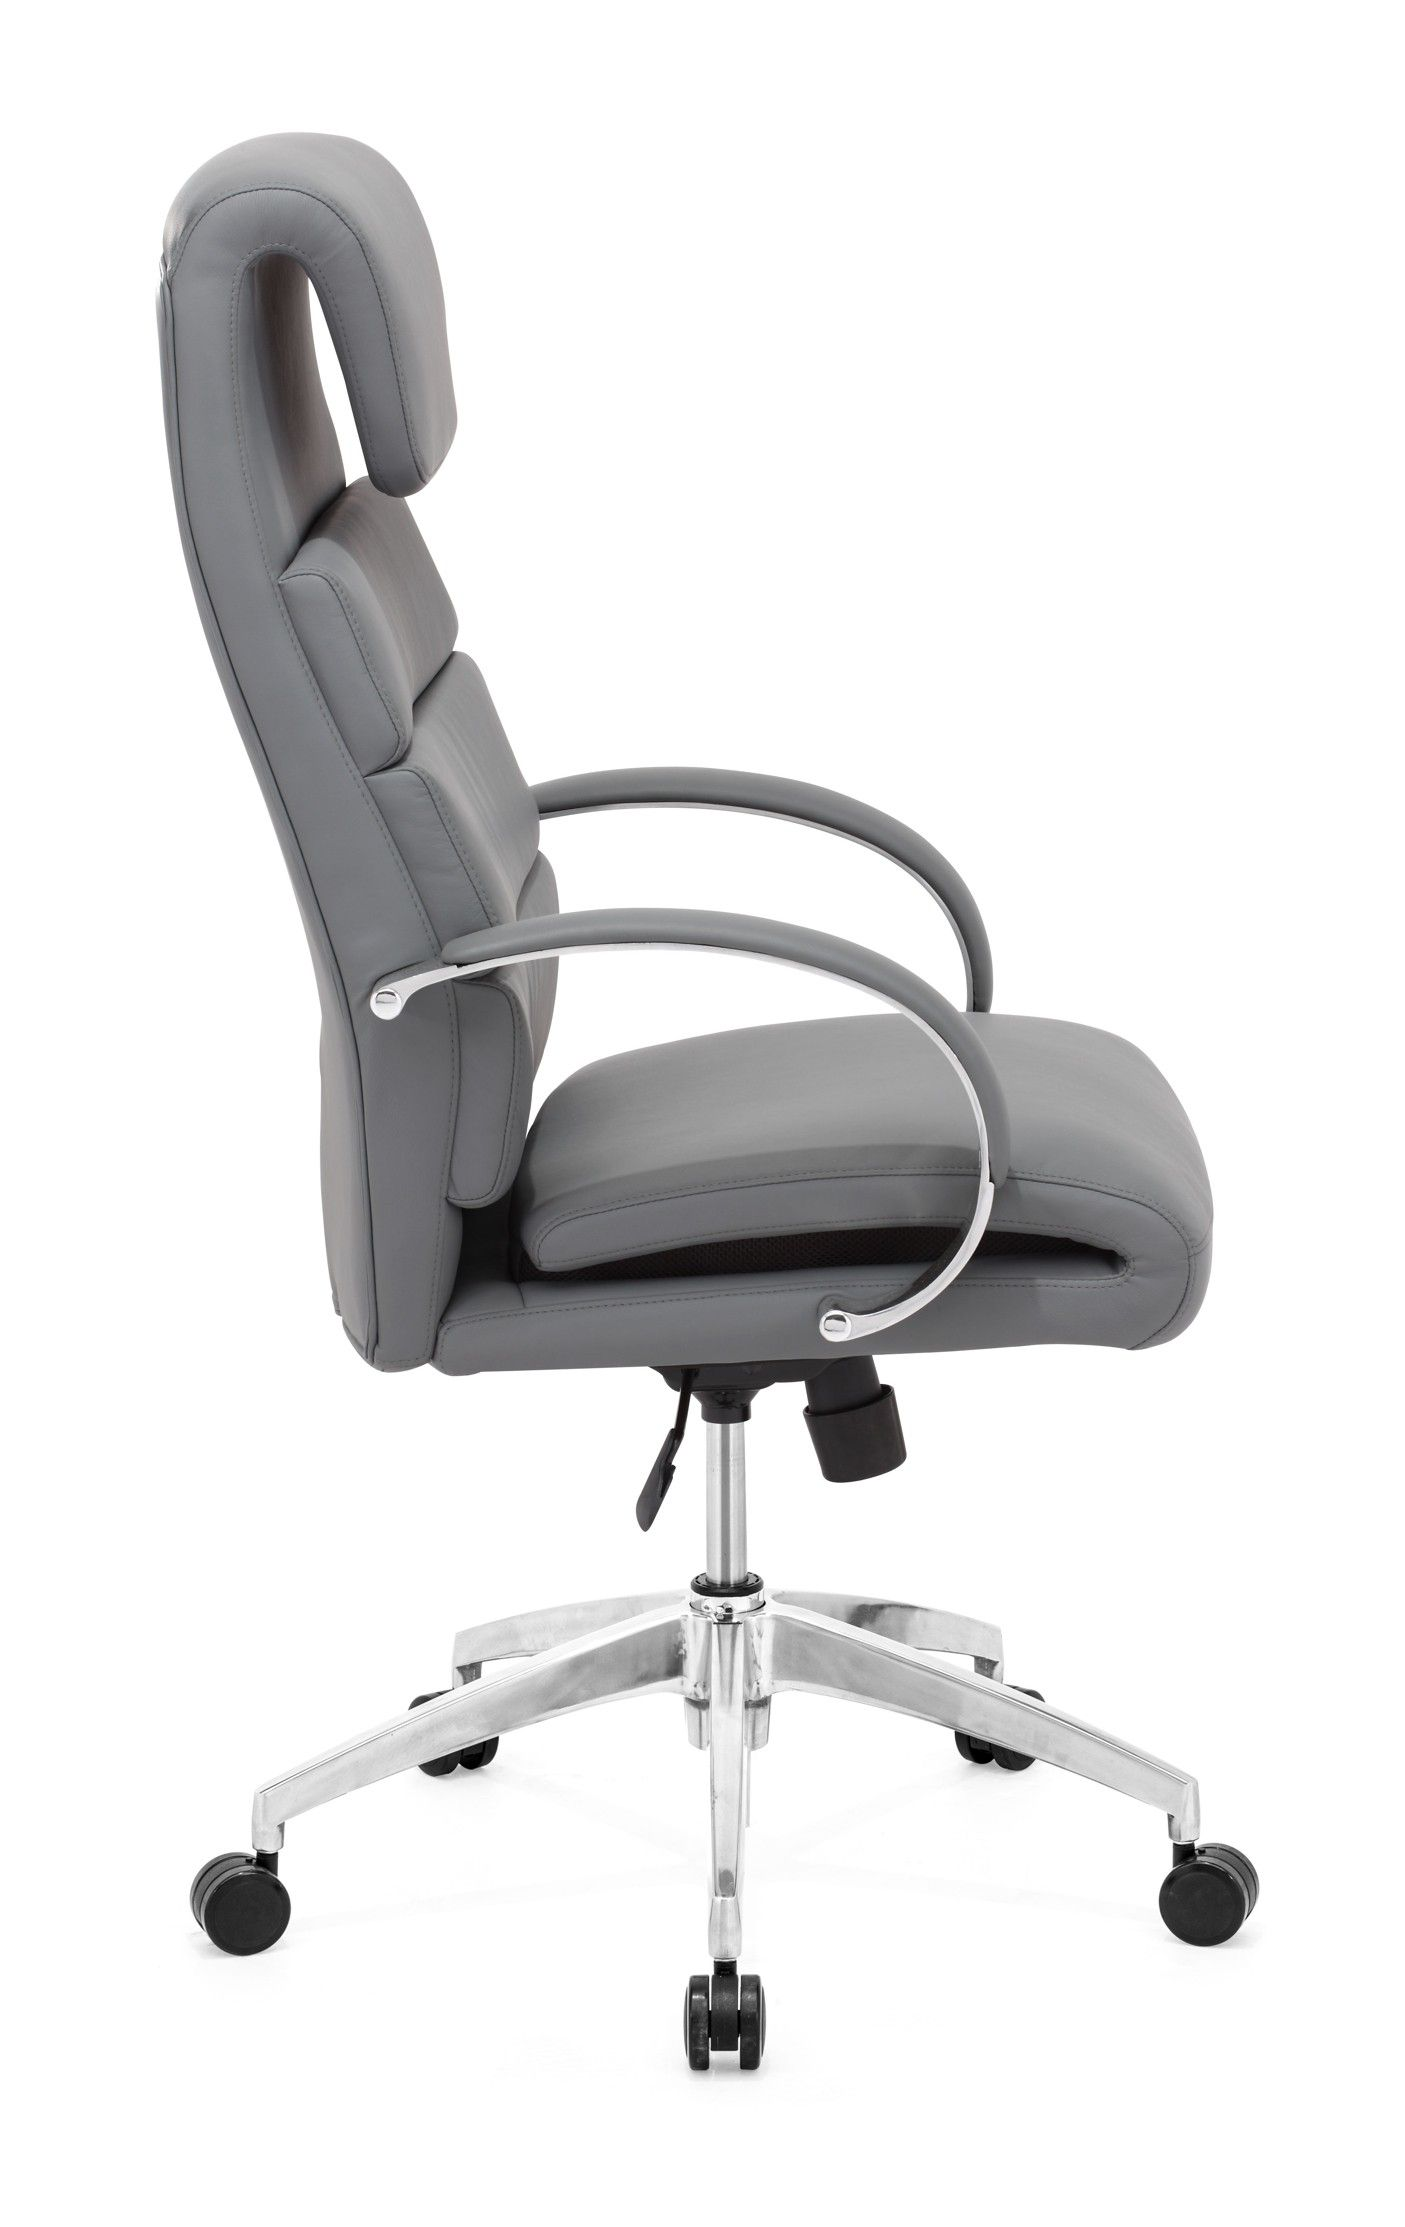 Awesome Chairs Awesome Epic Grey Office Chair 59 On Home Decor Ideas With